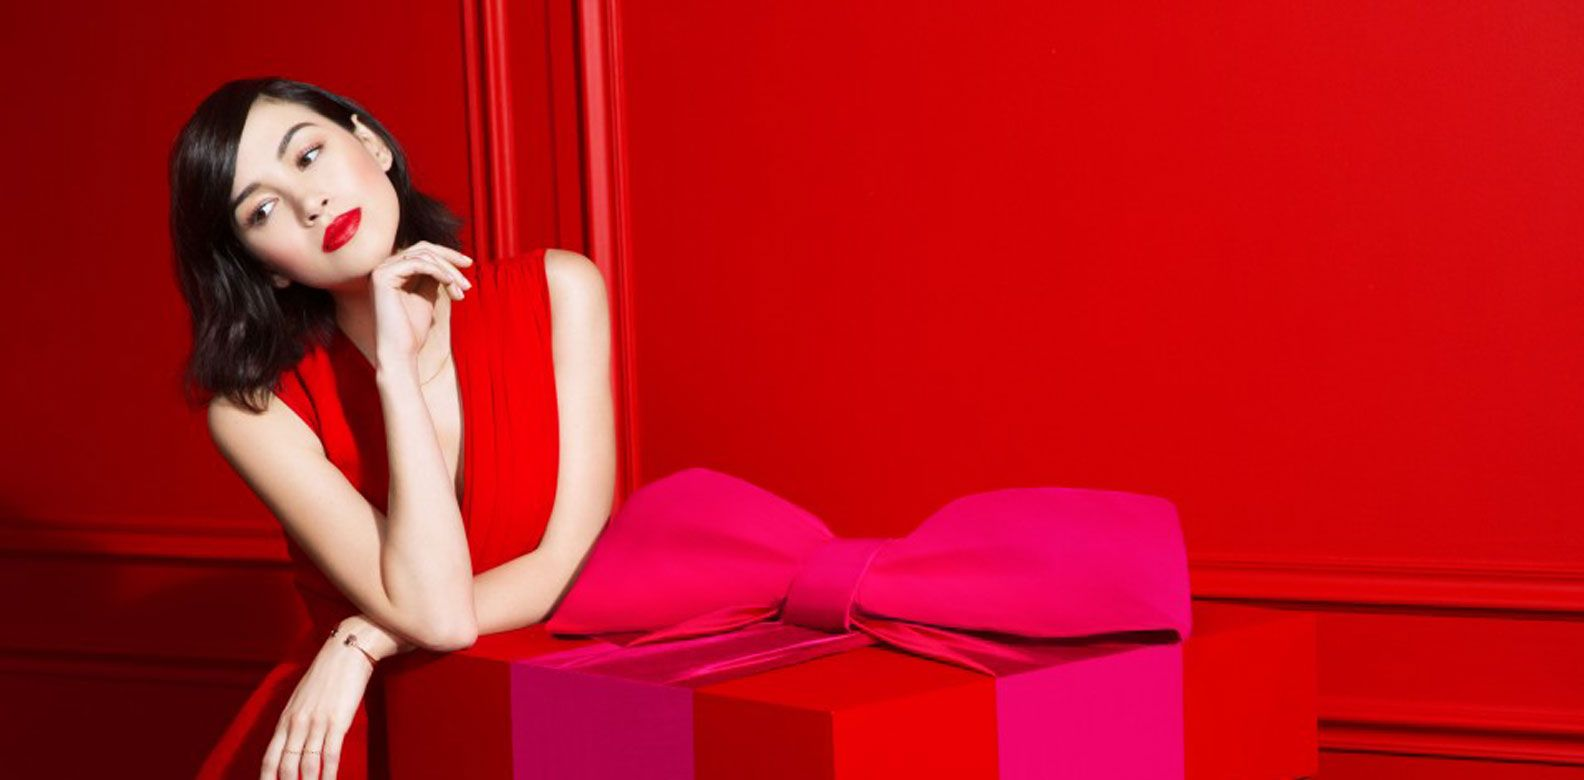 Make A Wish: Lancôme Celebrates This Chinese New Year With A Fabulous Festive Pop-Up Concept